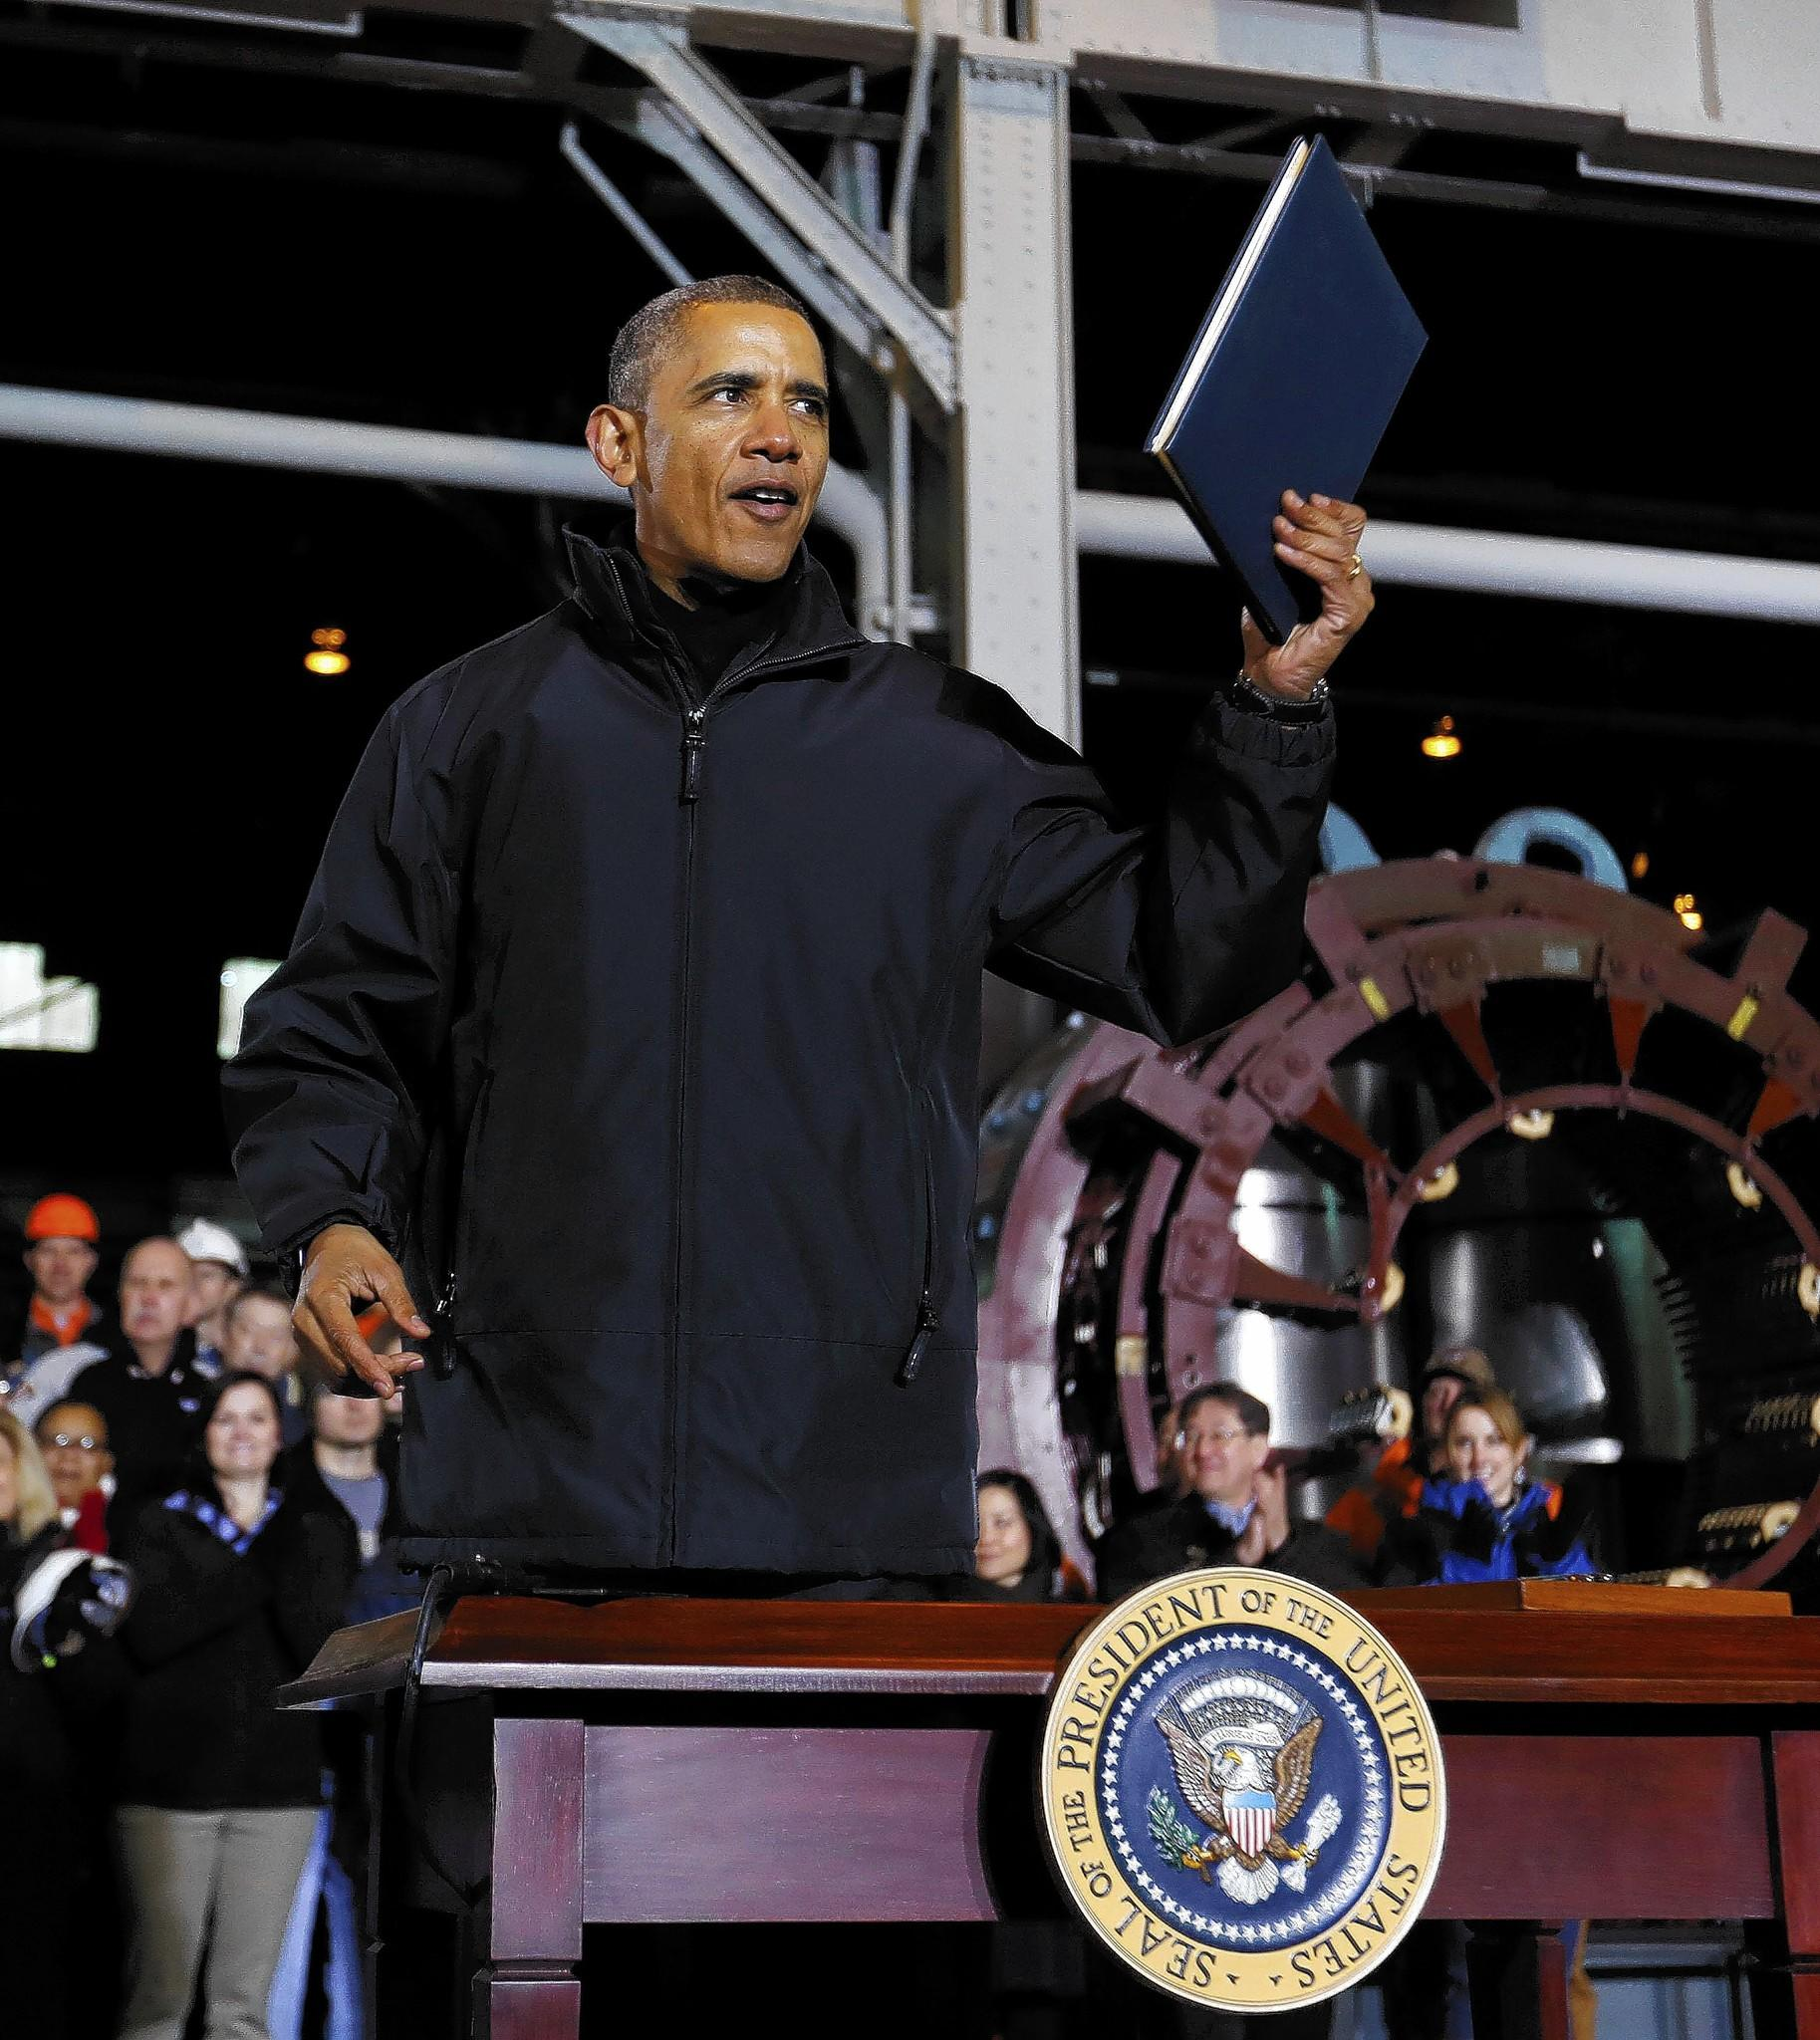 President Obama holds up memorandum instructing U.S. Treasury Department to create a new retirement account system after touring the U.S. Steel Irvin Plant in West Mifflin.